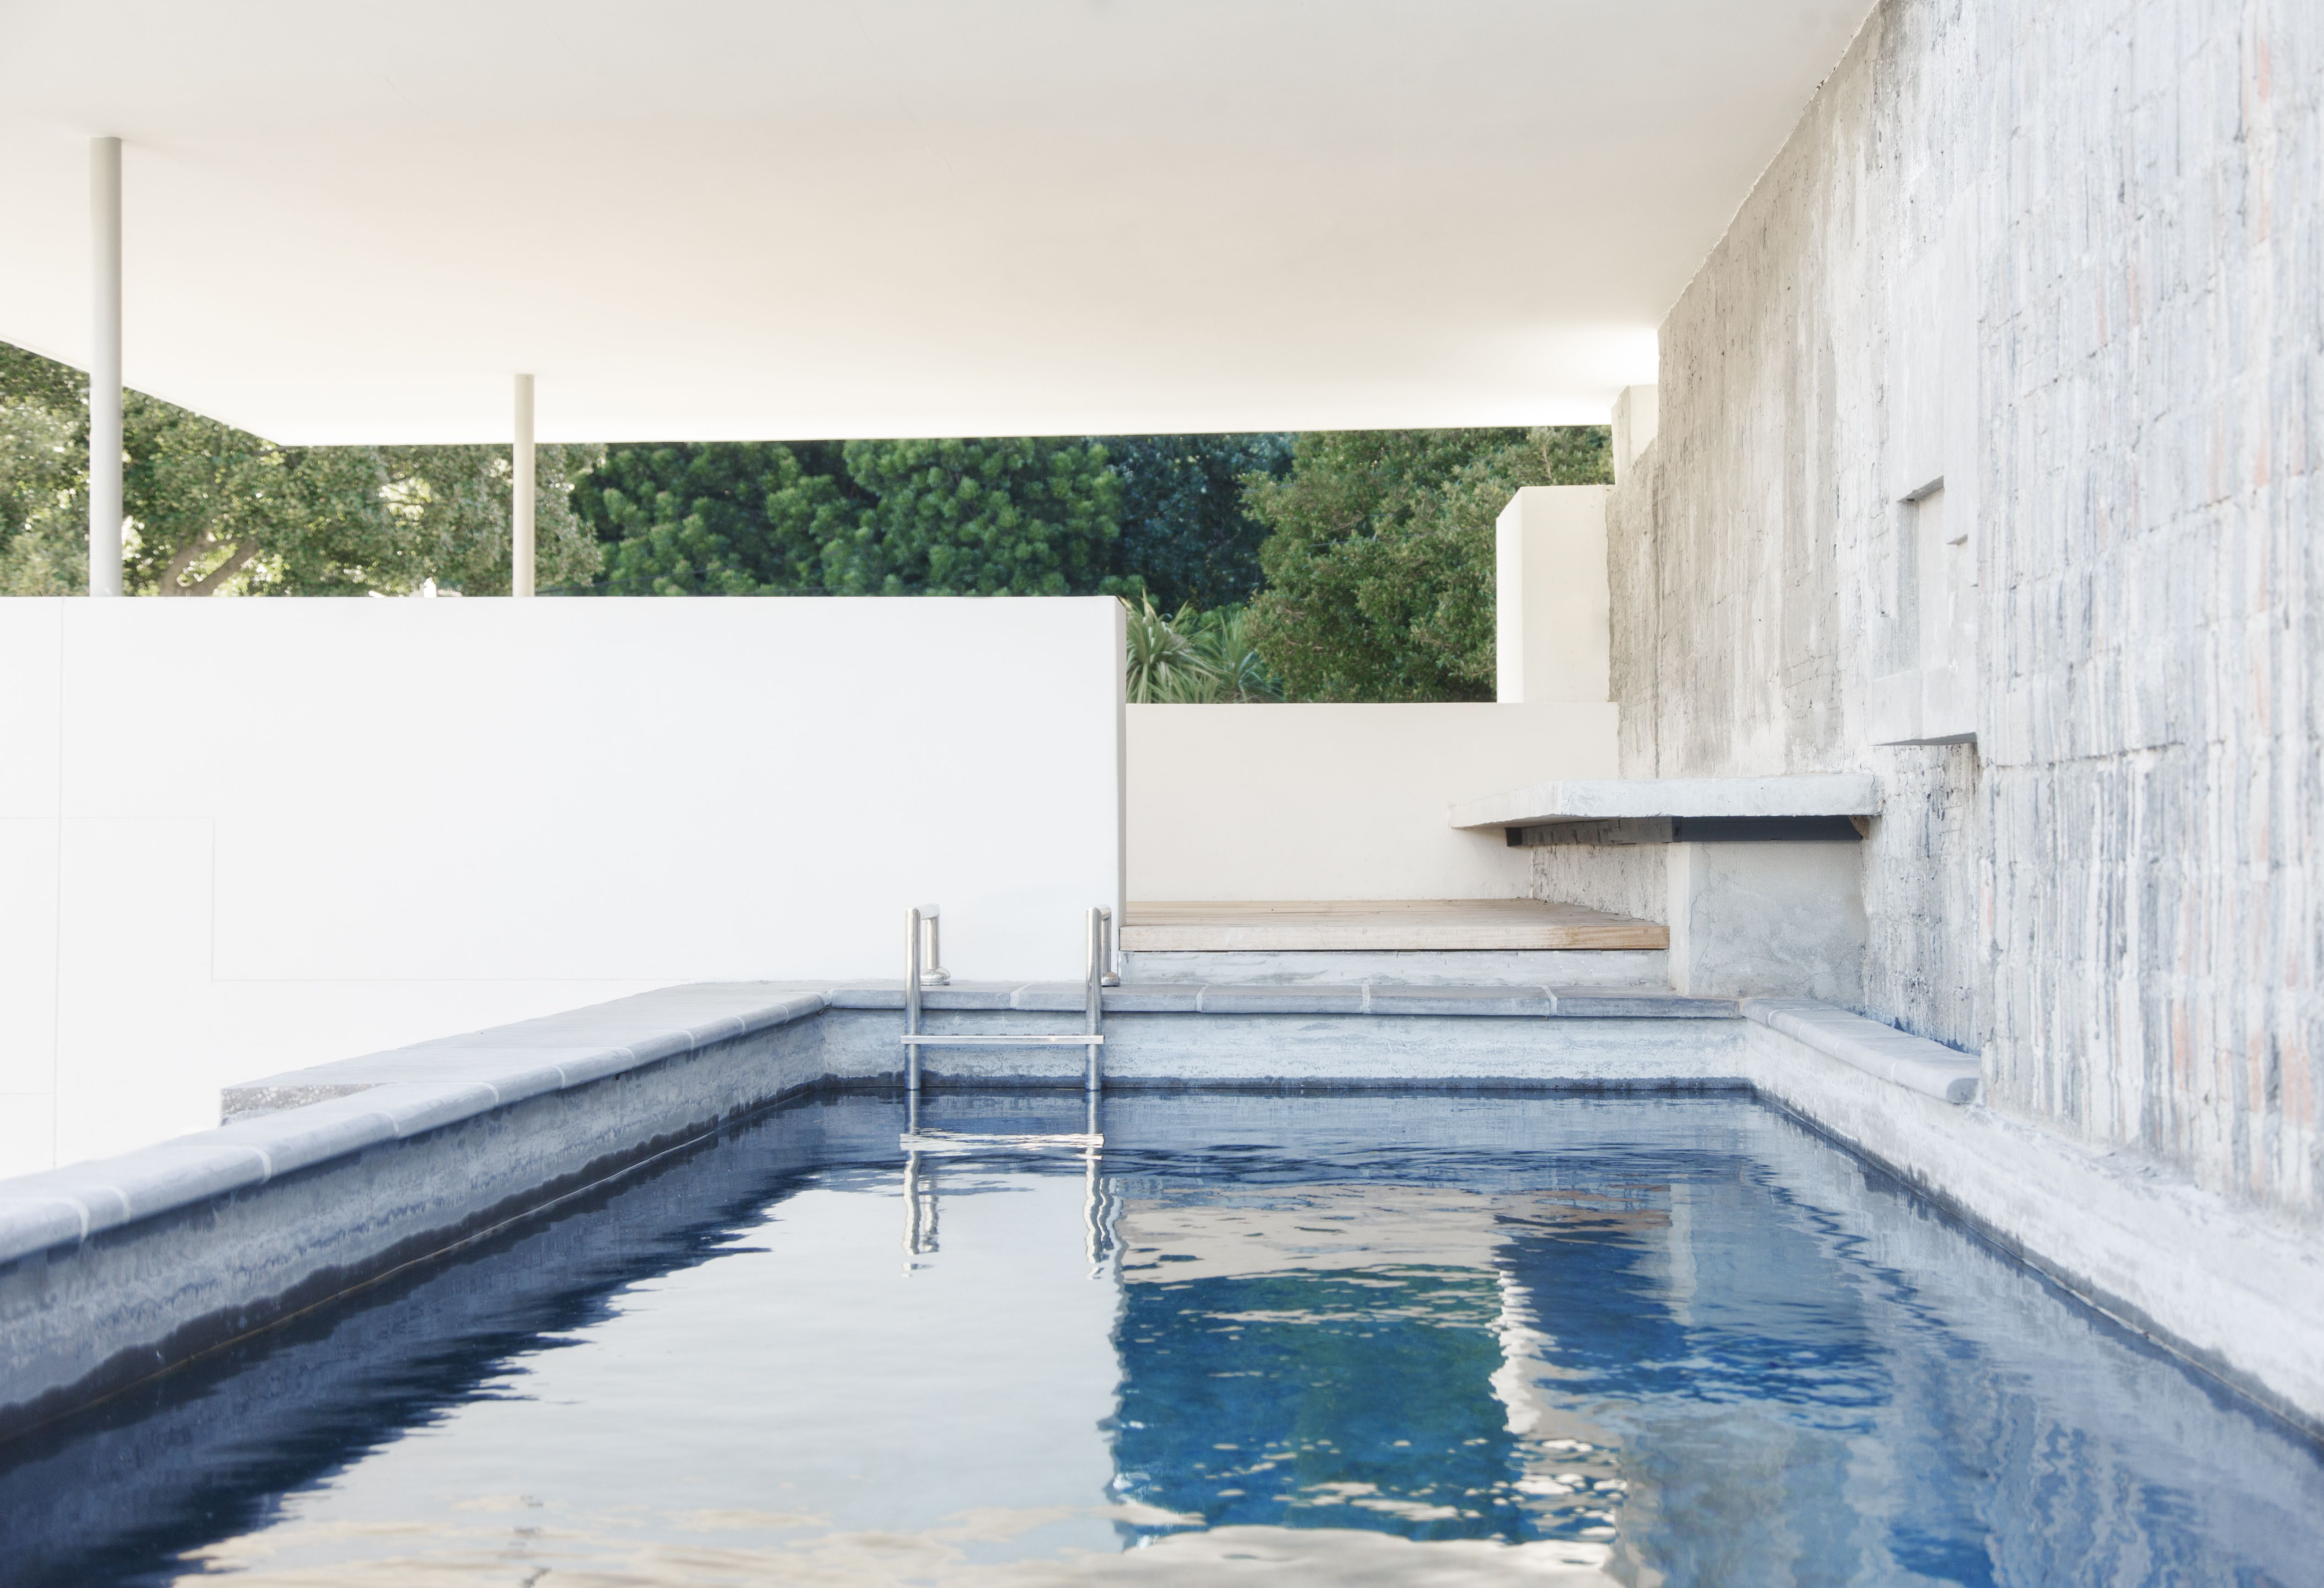 How To Smooth Wrinkled Vinyl Swimming Pool Liners